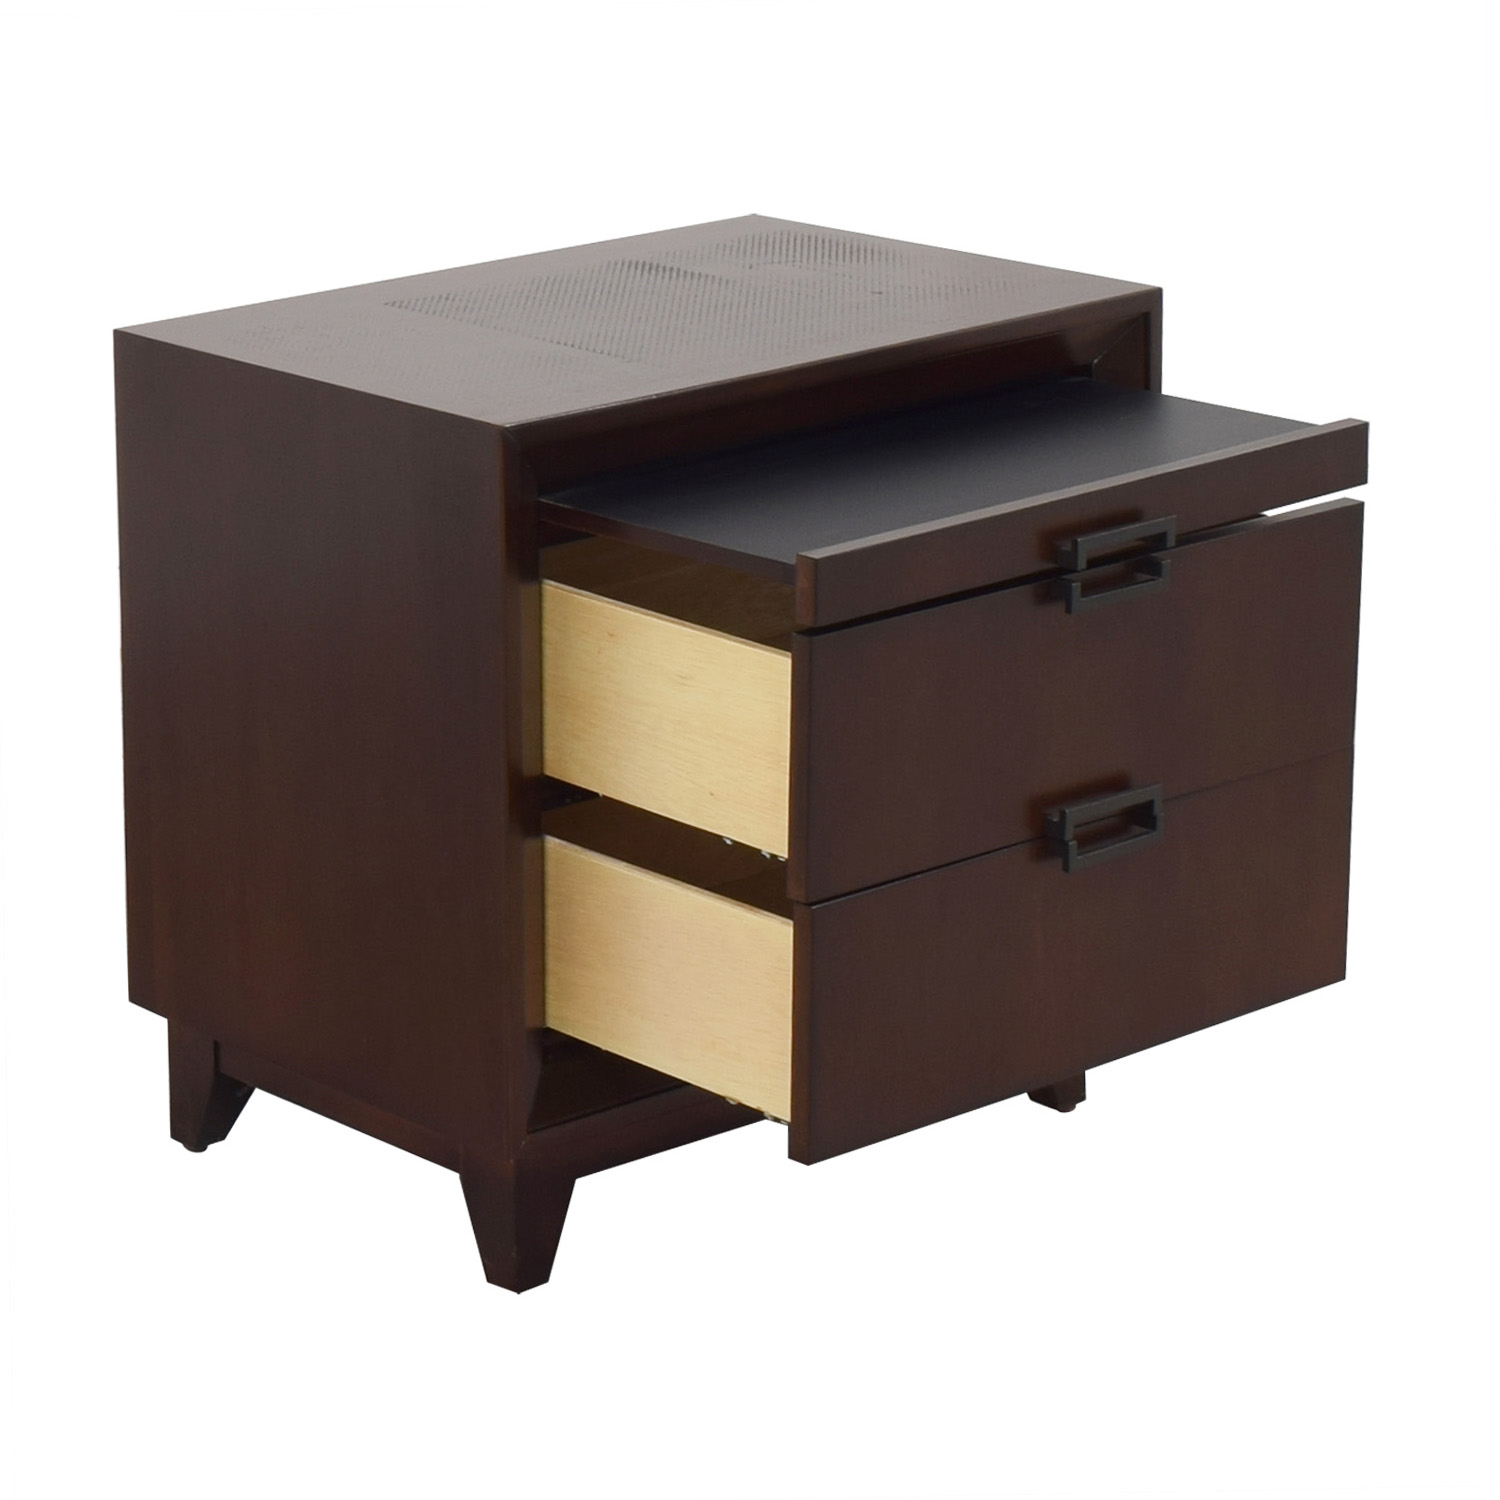 Casana Furniture Casana Furniture Vista Nightstand nyc